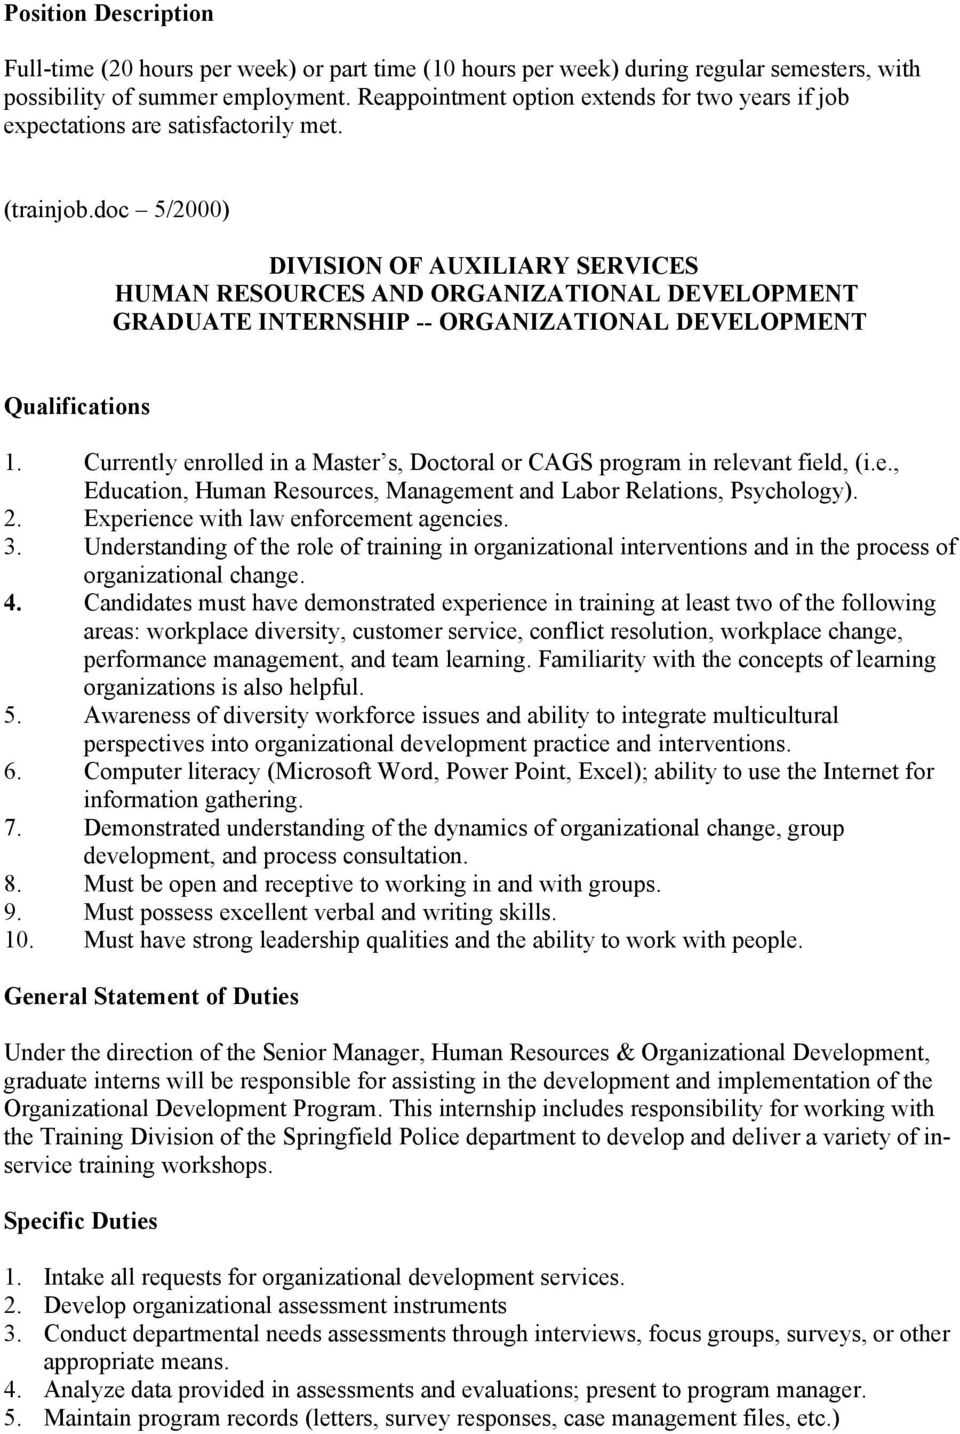 doc 5/2000) DIVISION OF AUXILIARY SERVICES HUMAN RESOURCES AND ORGANIZATIONAL DEVELOPMENT GRADUATE INTERNSHIP -- ORGANIZATIONAL DEVELOPMENT Qualifications 2. Experience with law enforcement agencies.